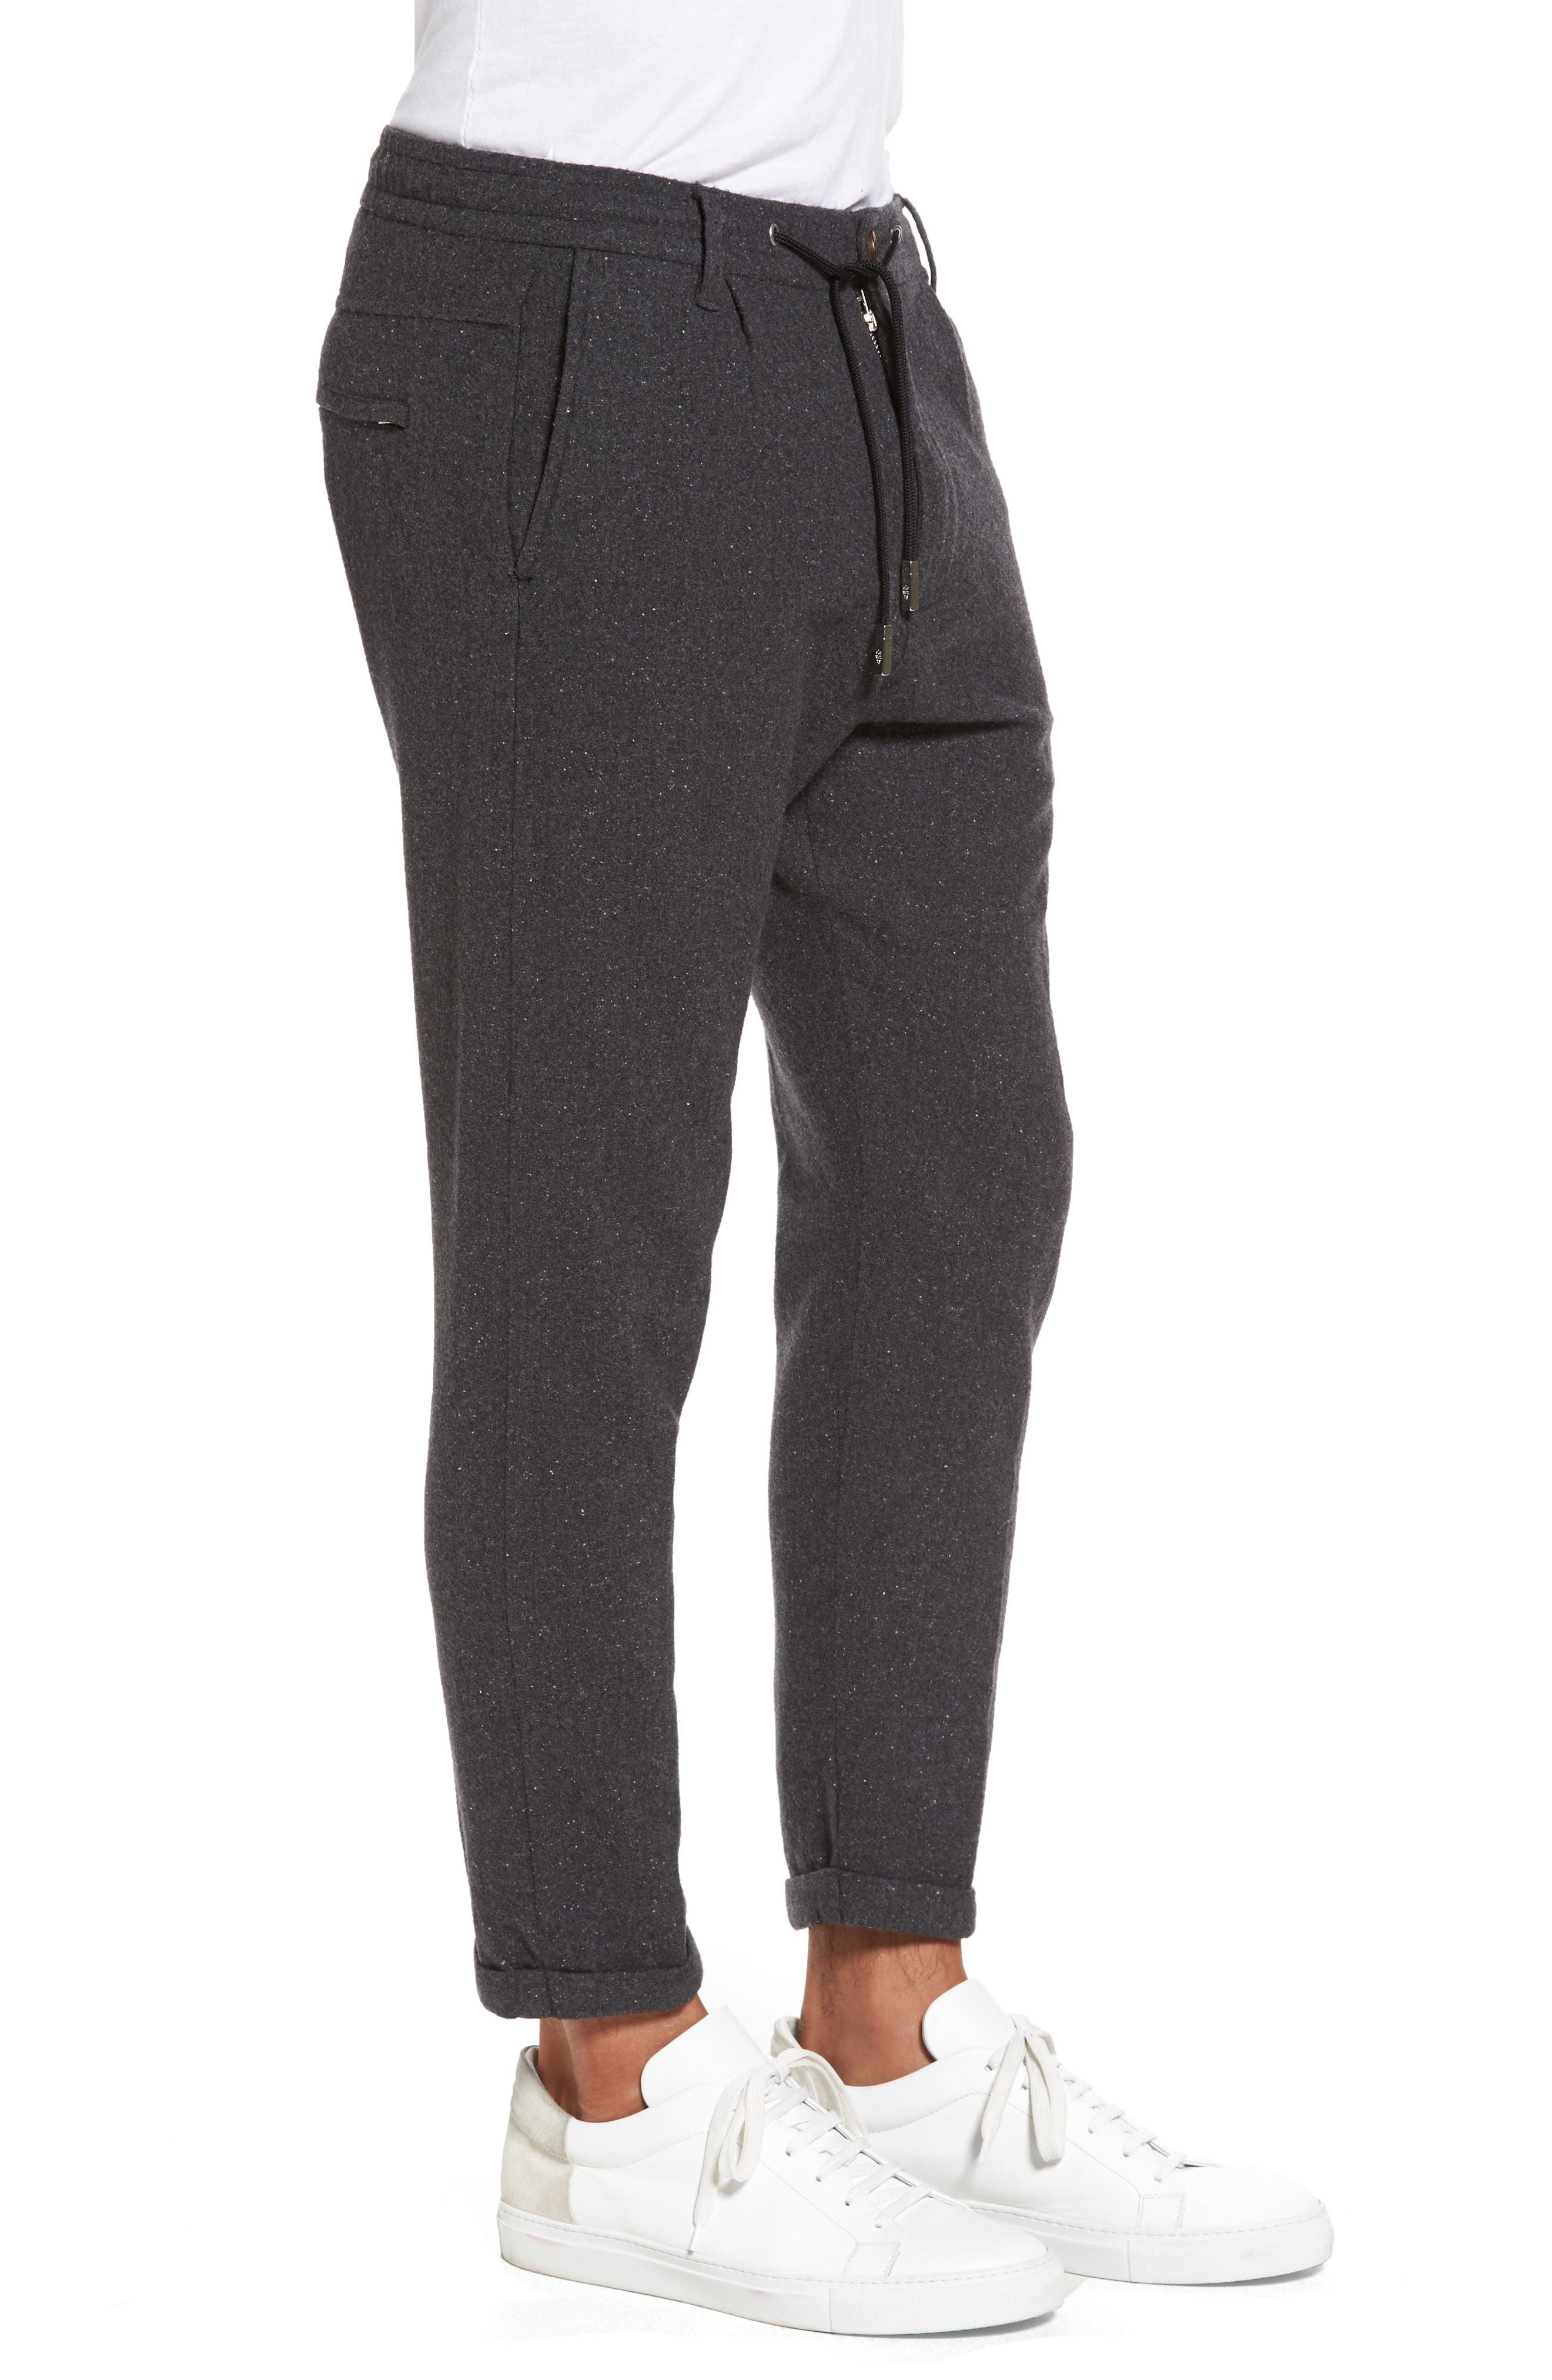 Donegal Stretch Wool Jogger Pants,                             Alternate thumbnail 3, color,                             Dark Grey